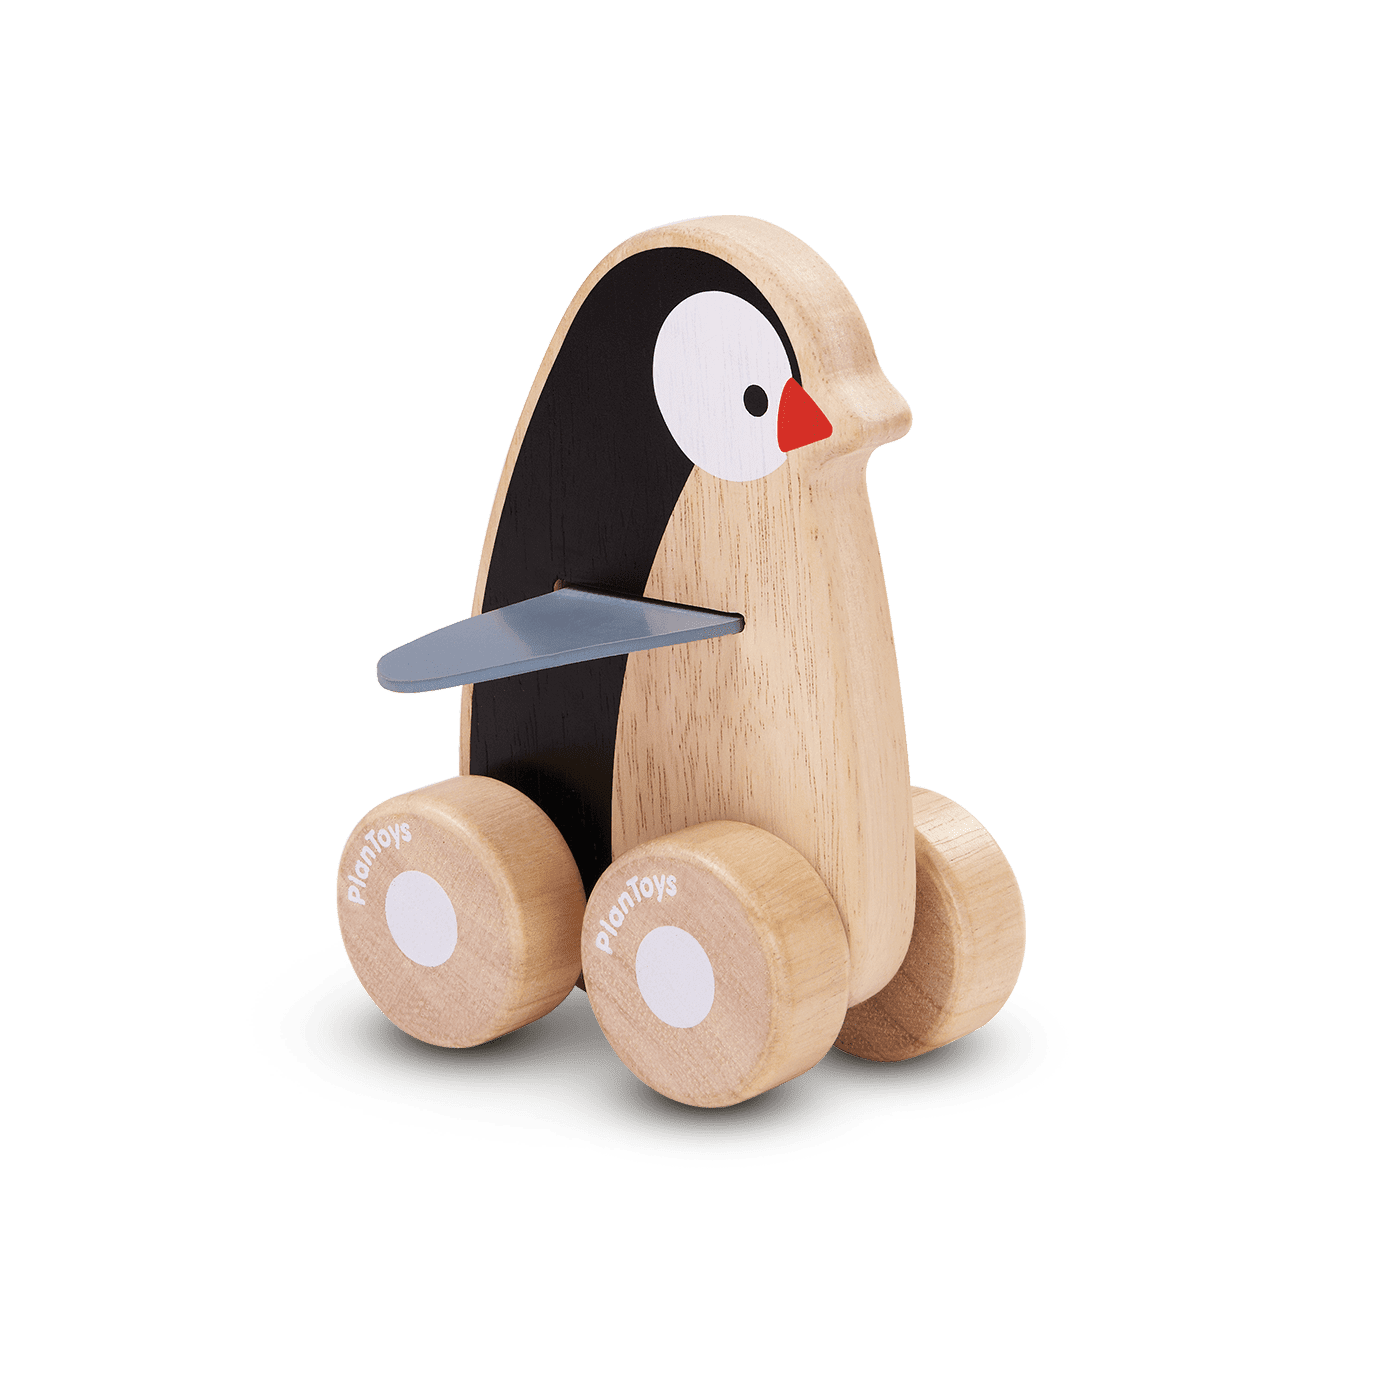 5444_PlanToys_PENGUIN_WHEELIE_Active_Play_Imagination_Coordination_Language_and_Communications_Fine_Motor_12m_Wooden_toys_Education_toys_Safety_Toys_Non-toxic_0.png